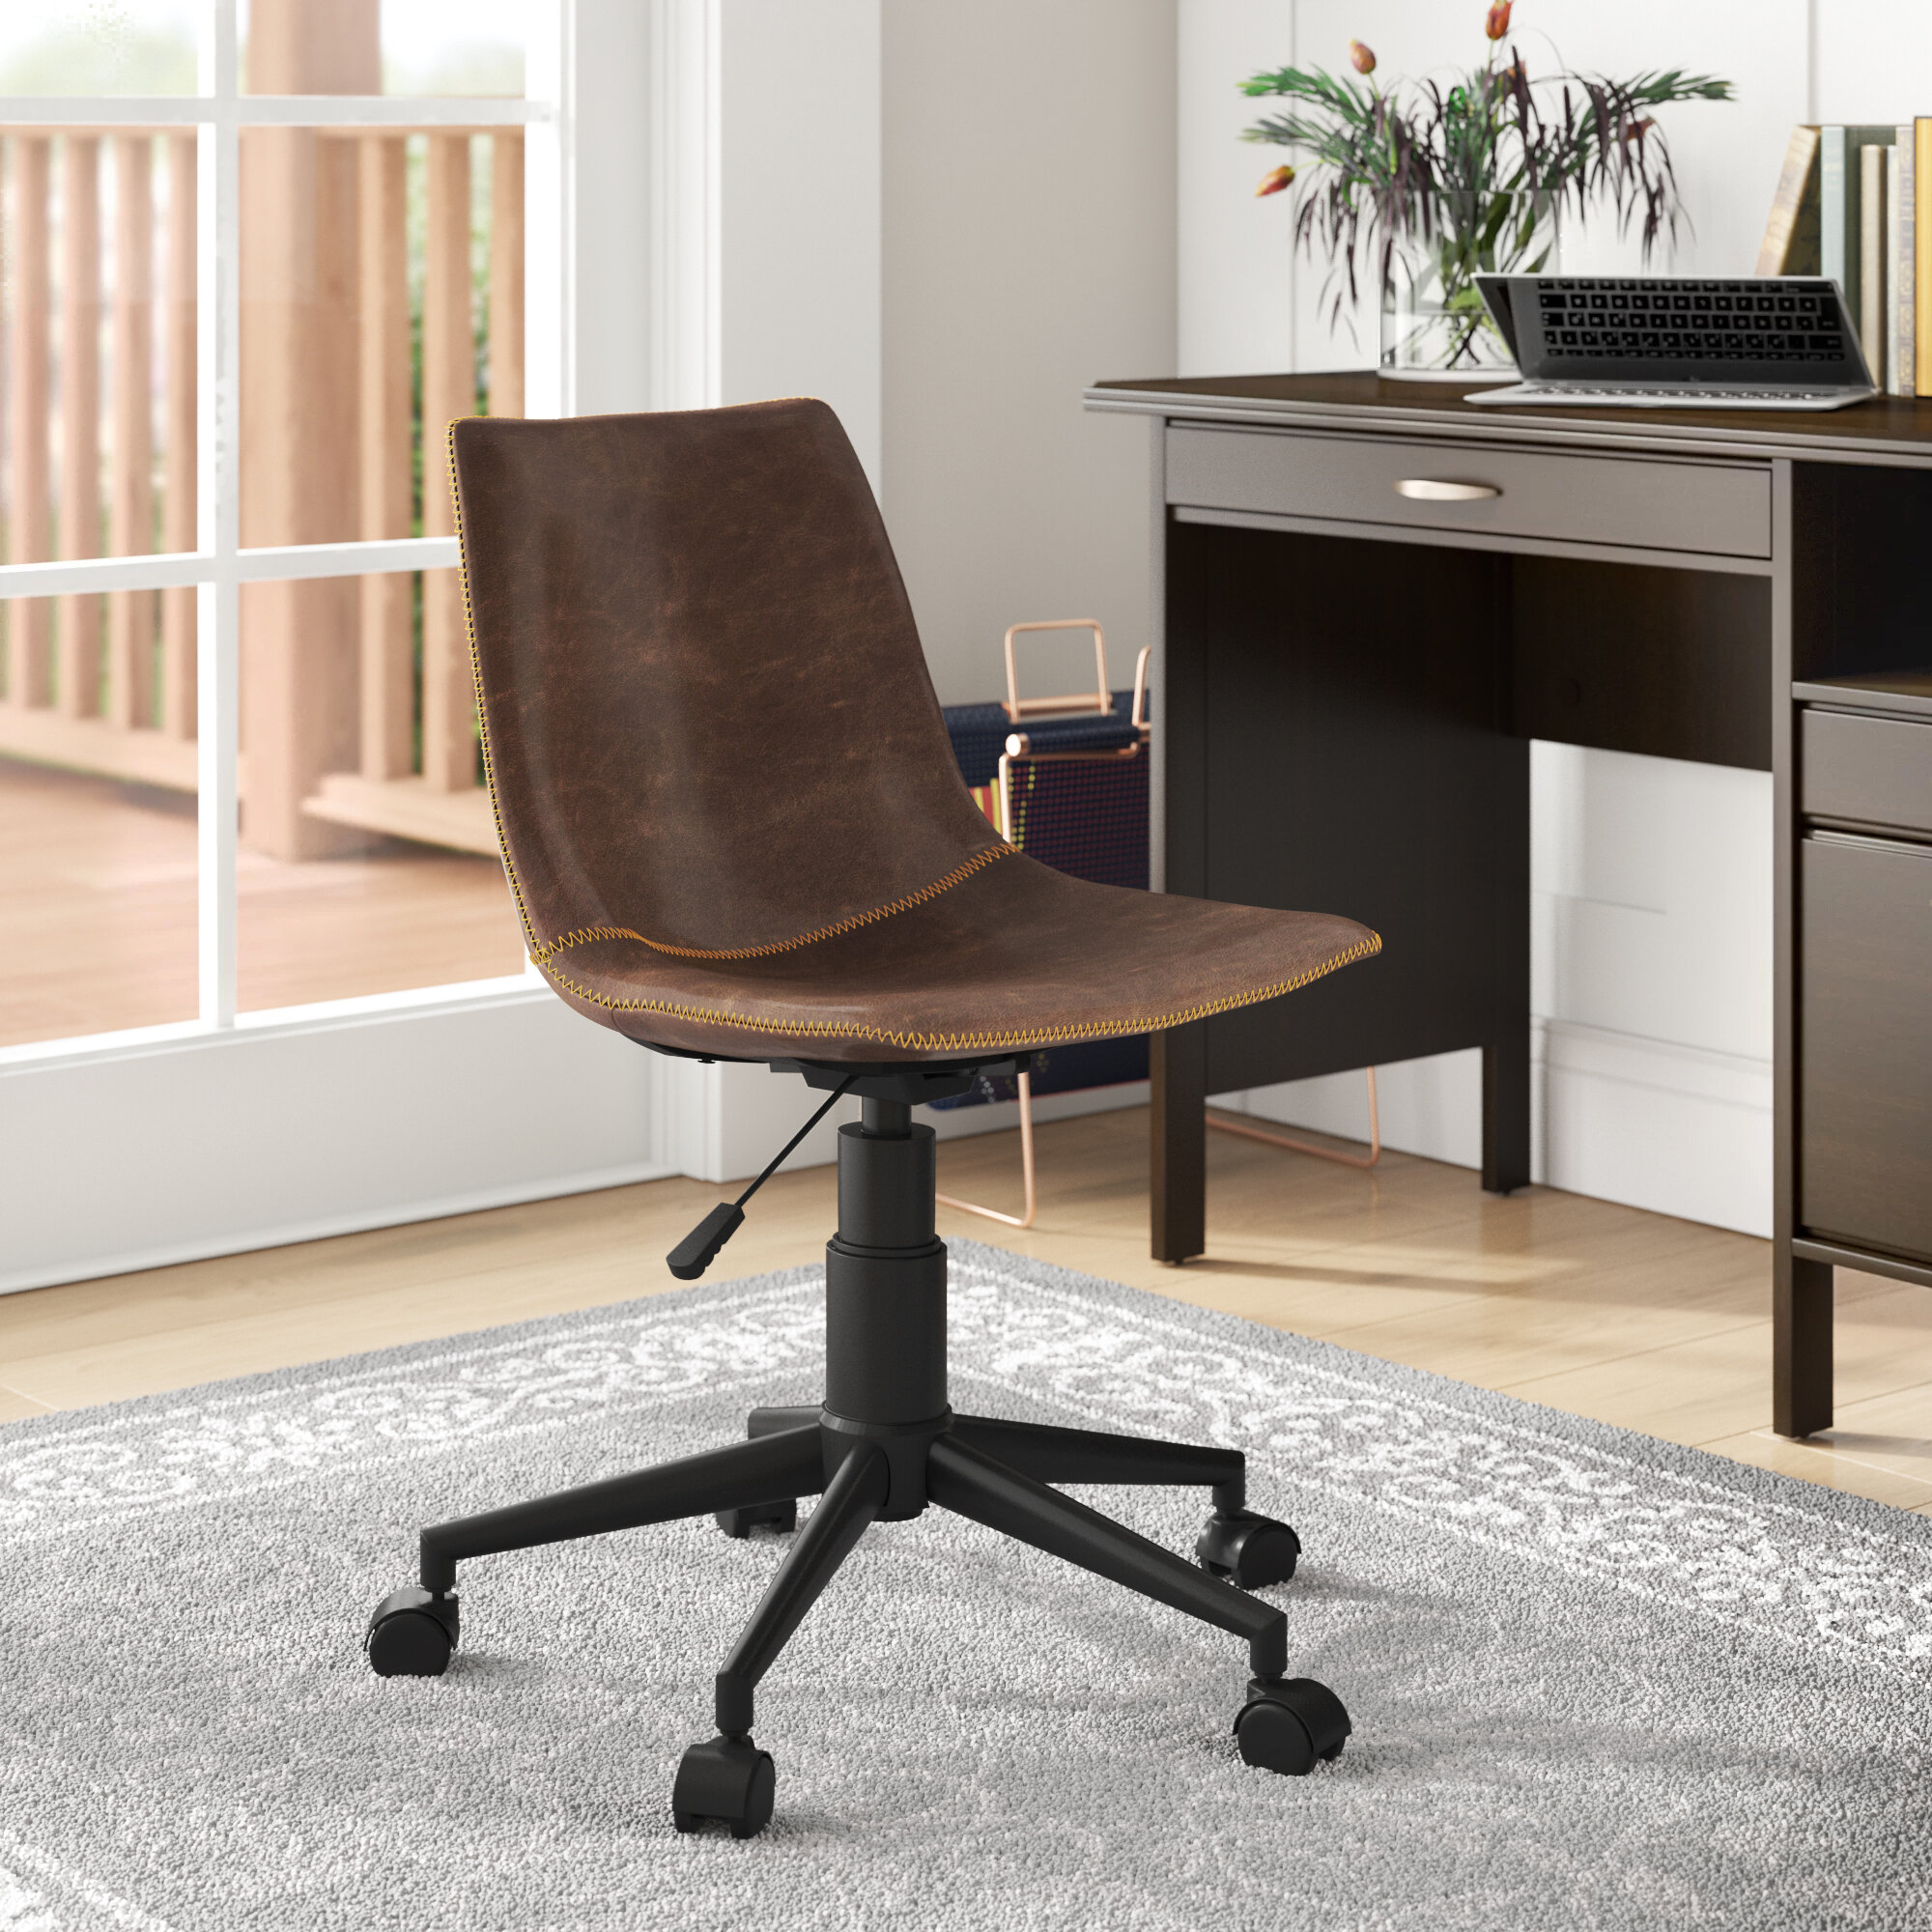 Desk Chairs & Computer Chairs | Wayfair